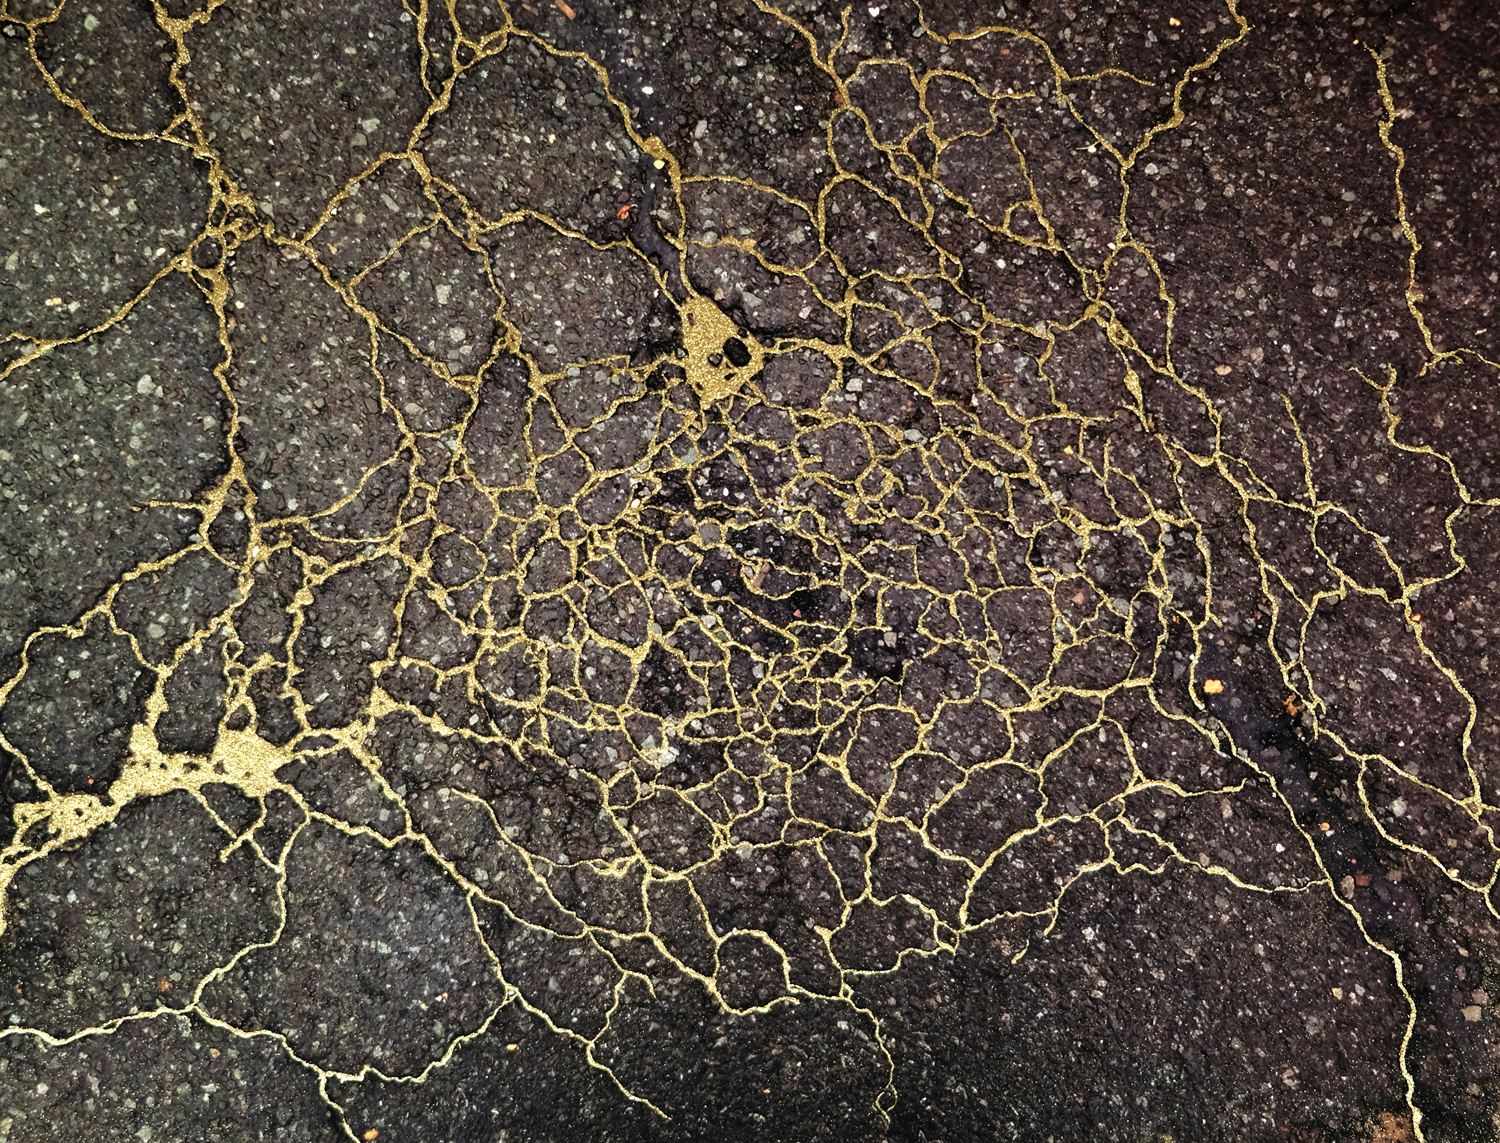 Sidewalk Kintsukuroi, The Traditional Japanese Art of Gold Repair Used to Fix Cracks in the Ground